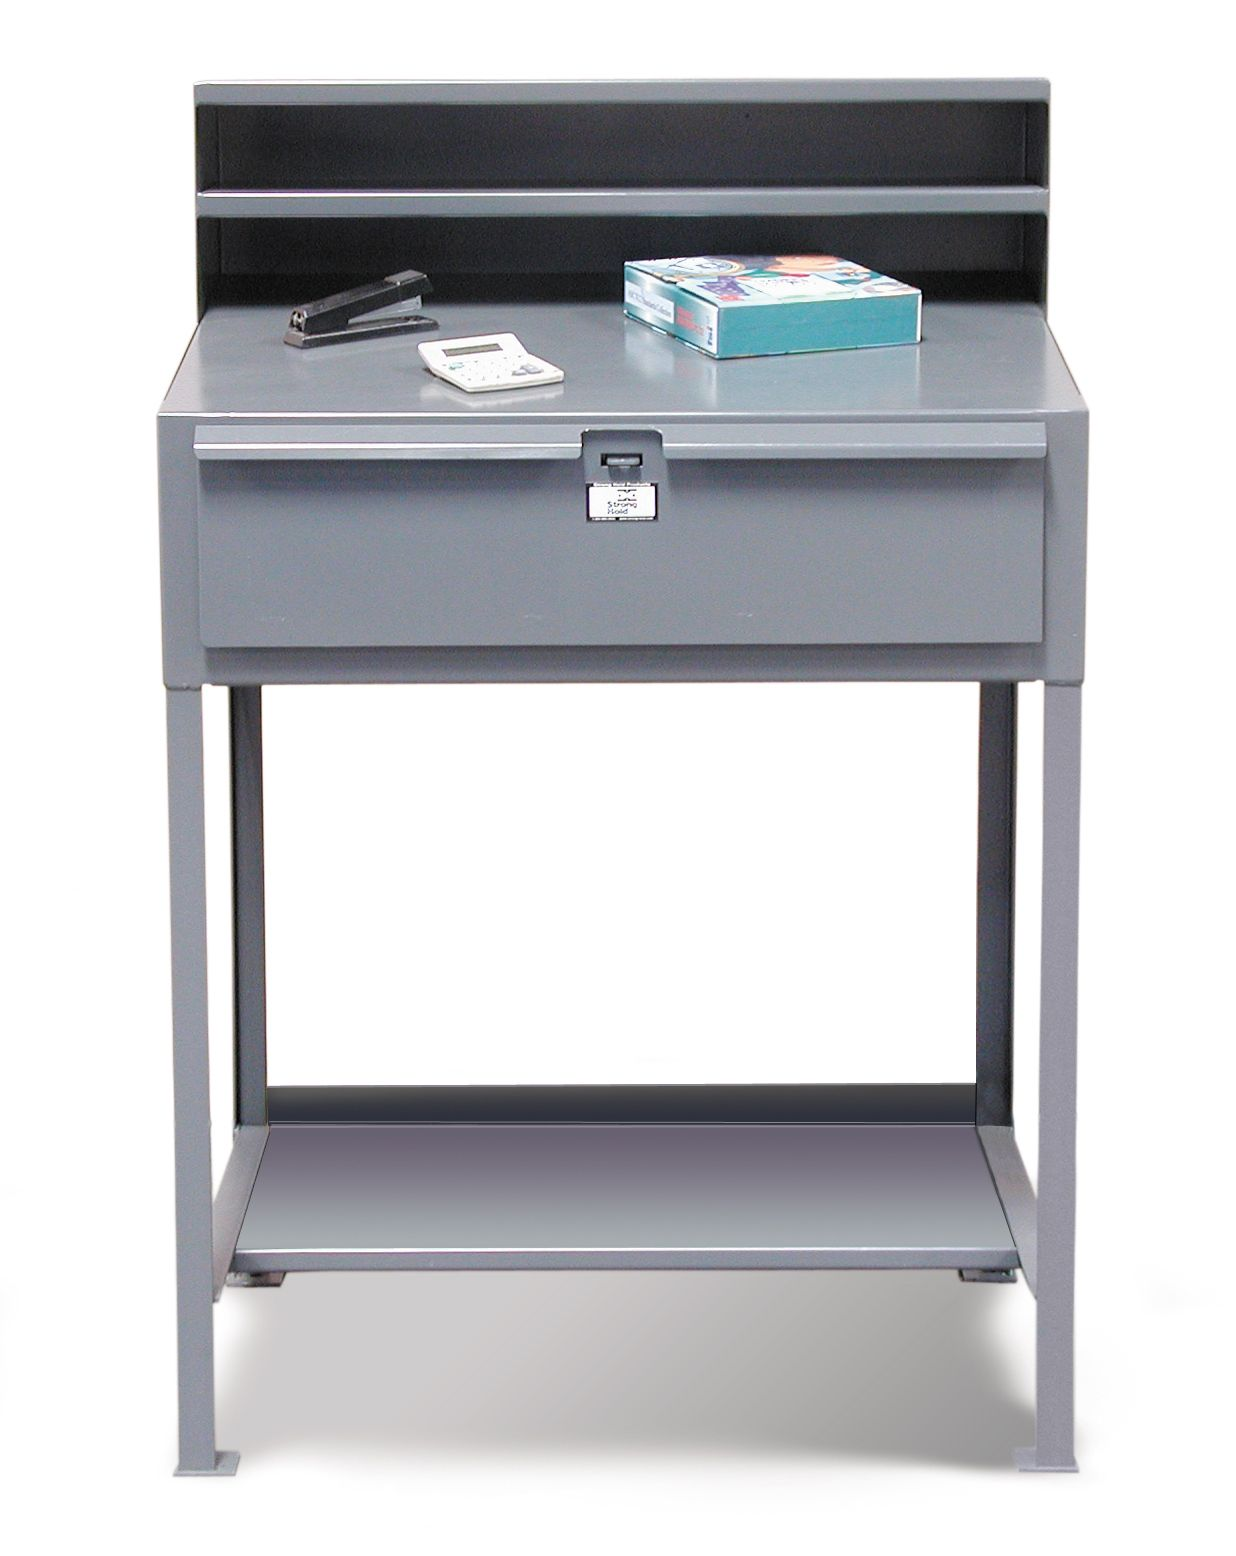 Shipping and Receiving Desk  The Strong Hold Shipping and